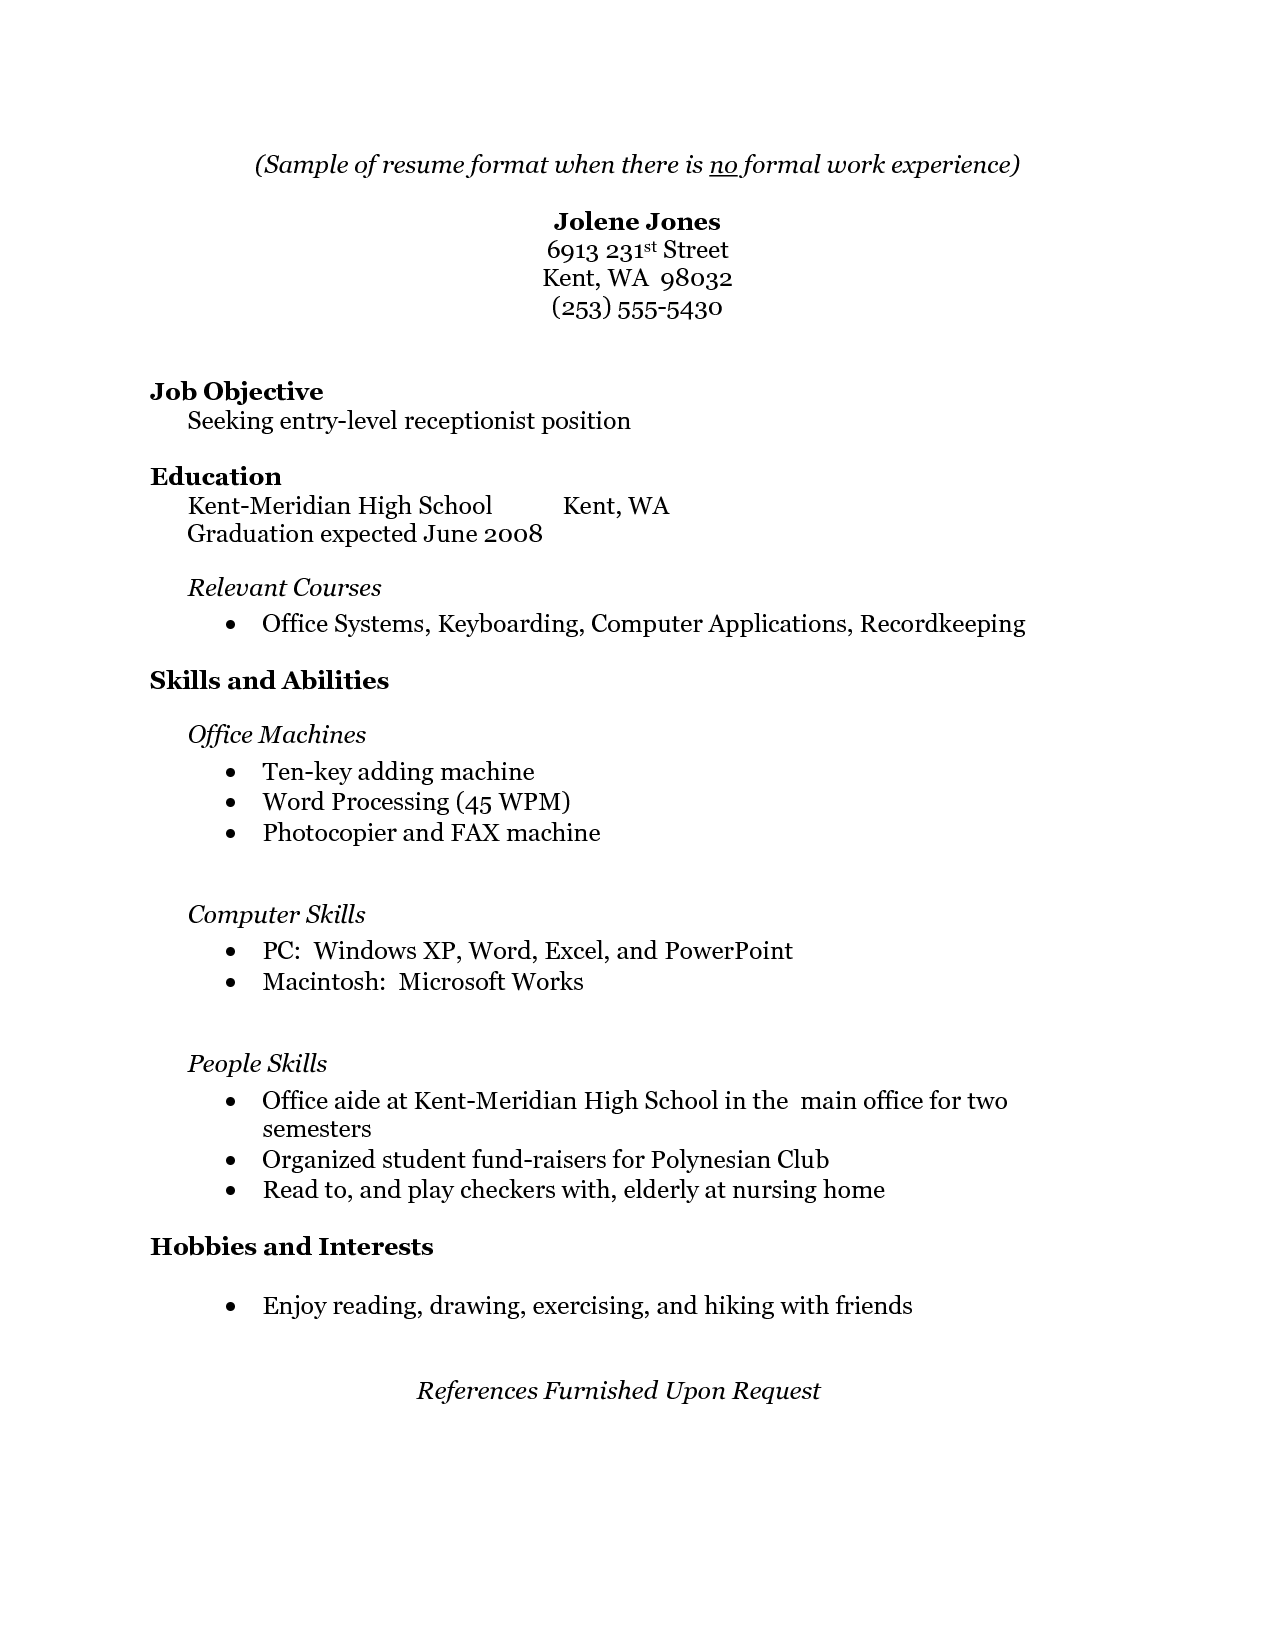 Resume Examples With No Work Experience - Resume Sample